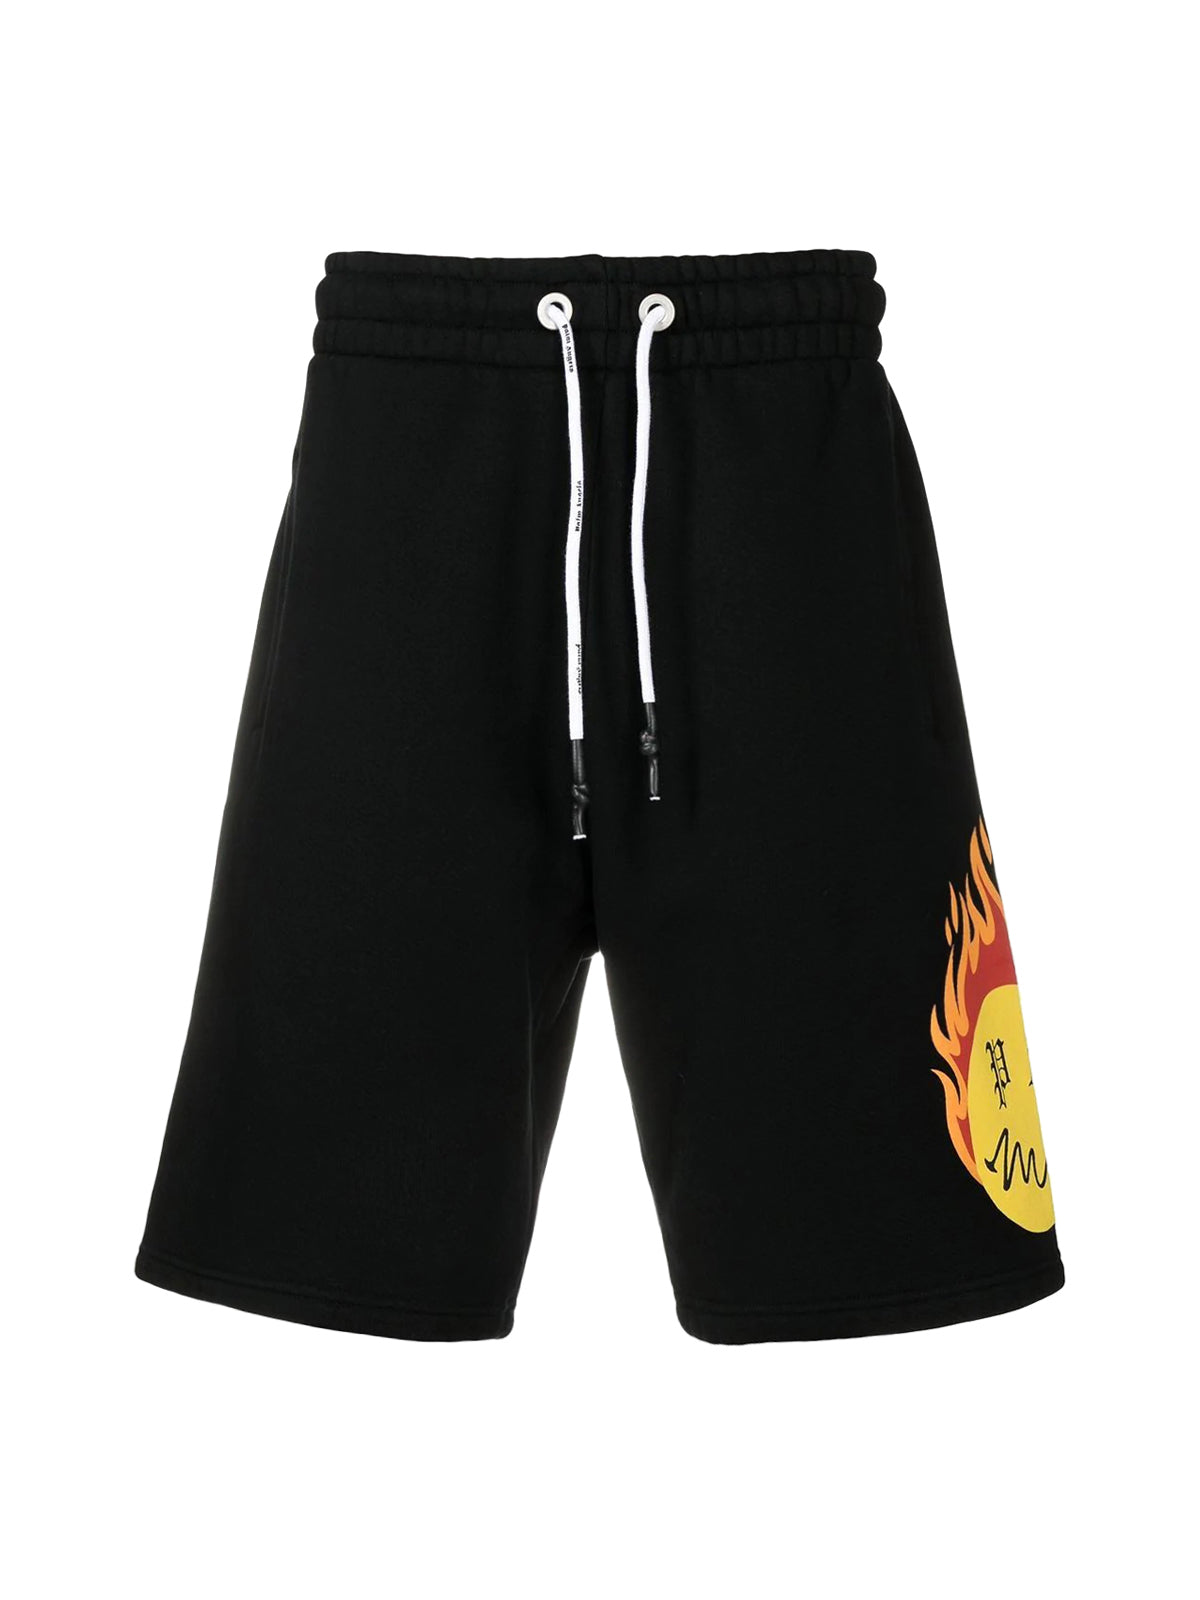 Burning Head printed shorts